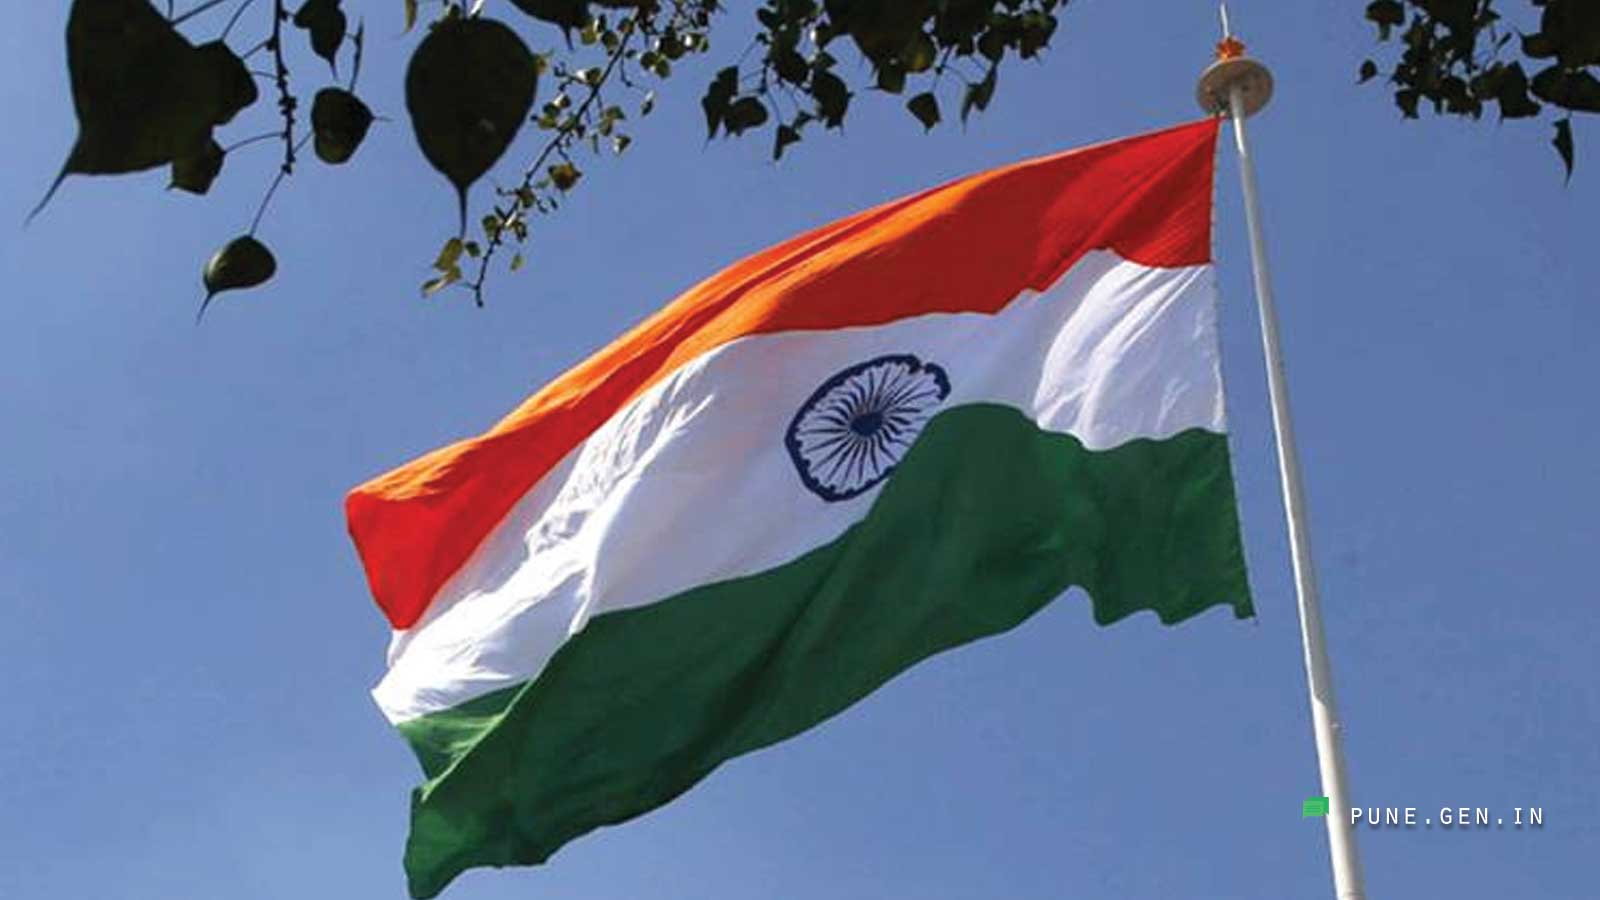 The Second Tallest Flag of India At Police Garden Kolhapur, Maharashtra